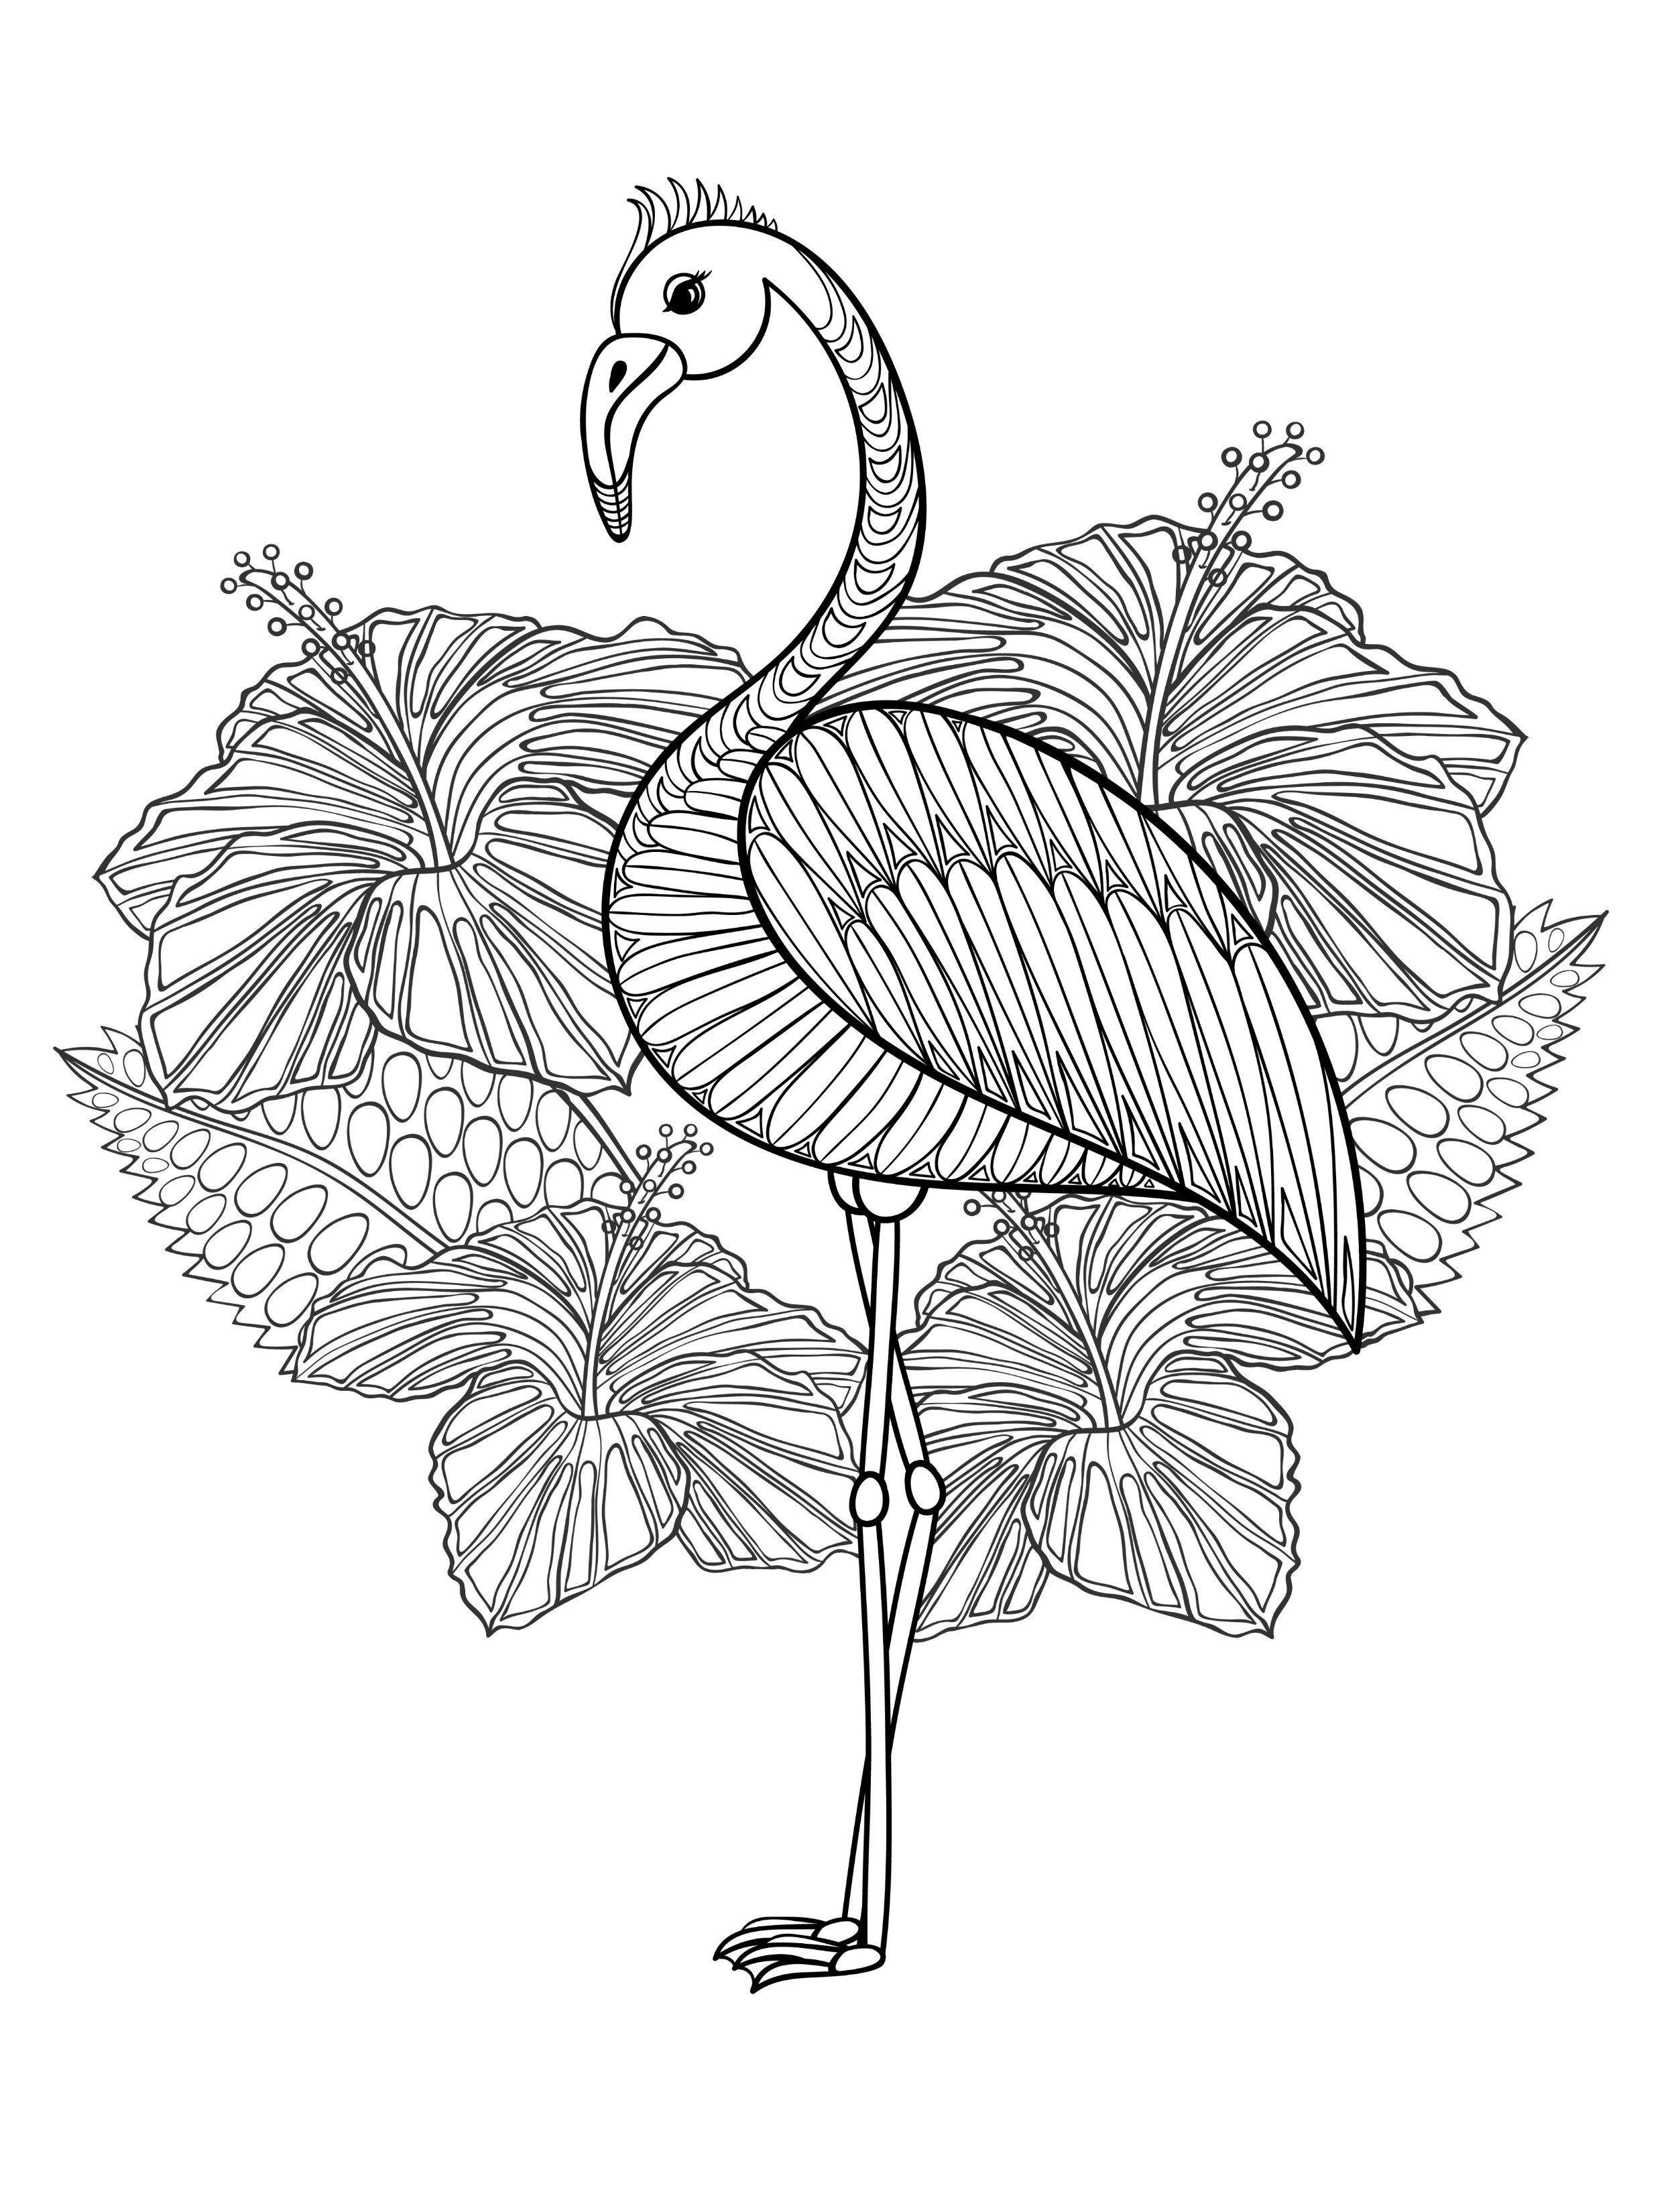 Cute Flamingo Coloring Page For Adults To Print At Home Projects